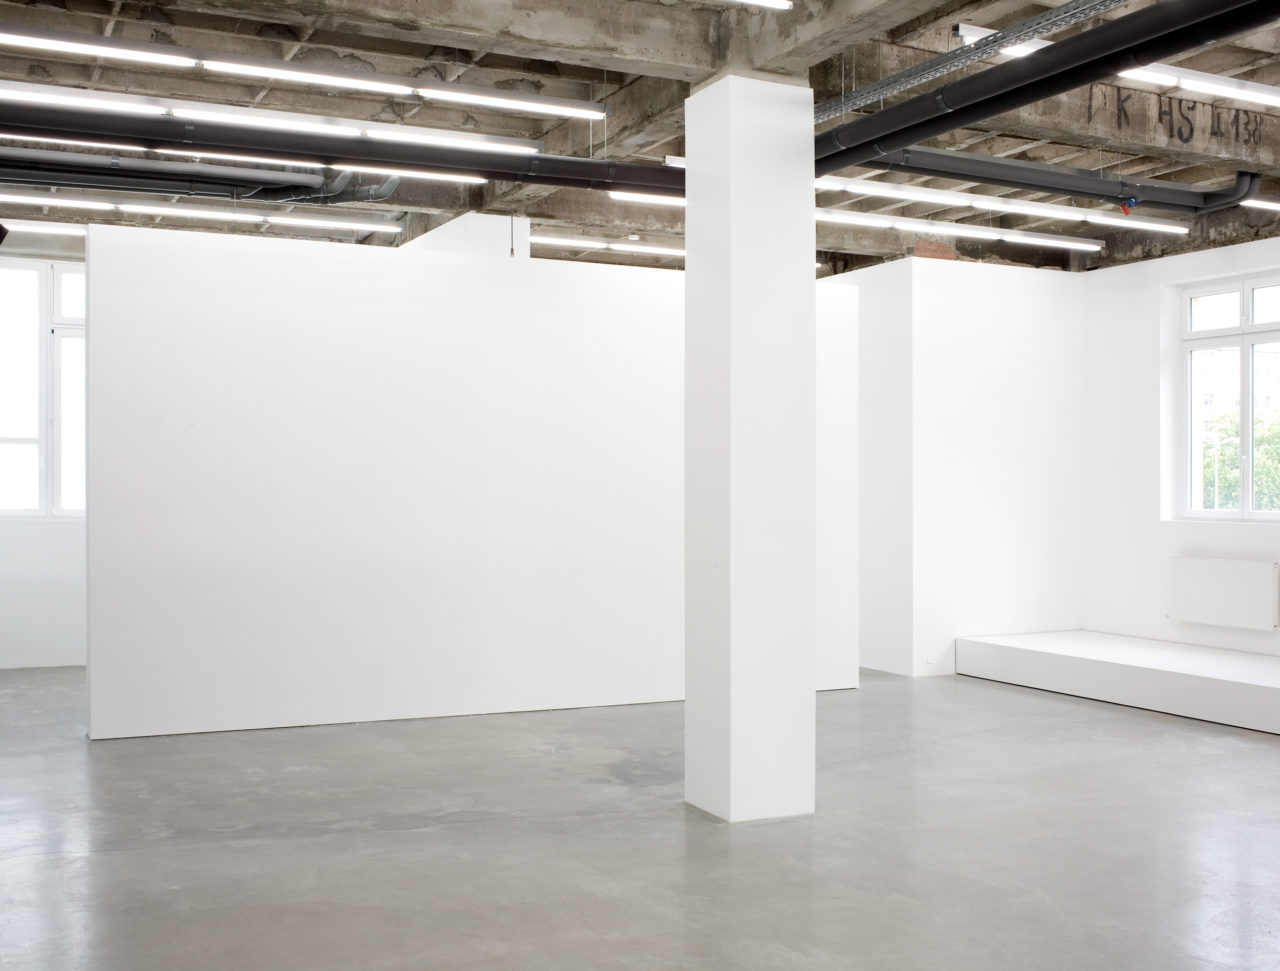 less, Installation view